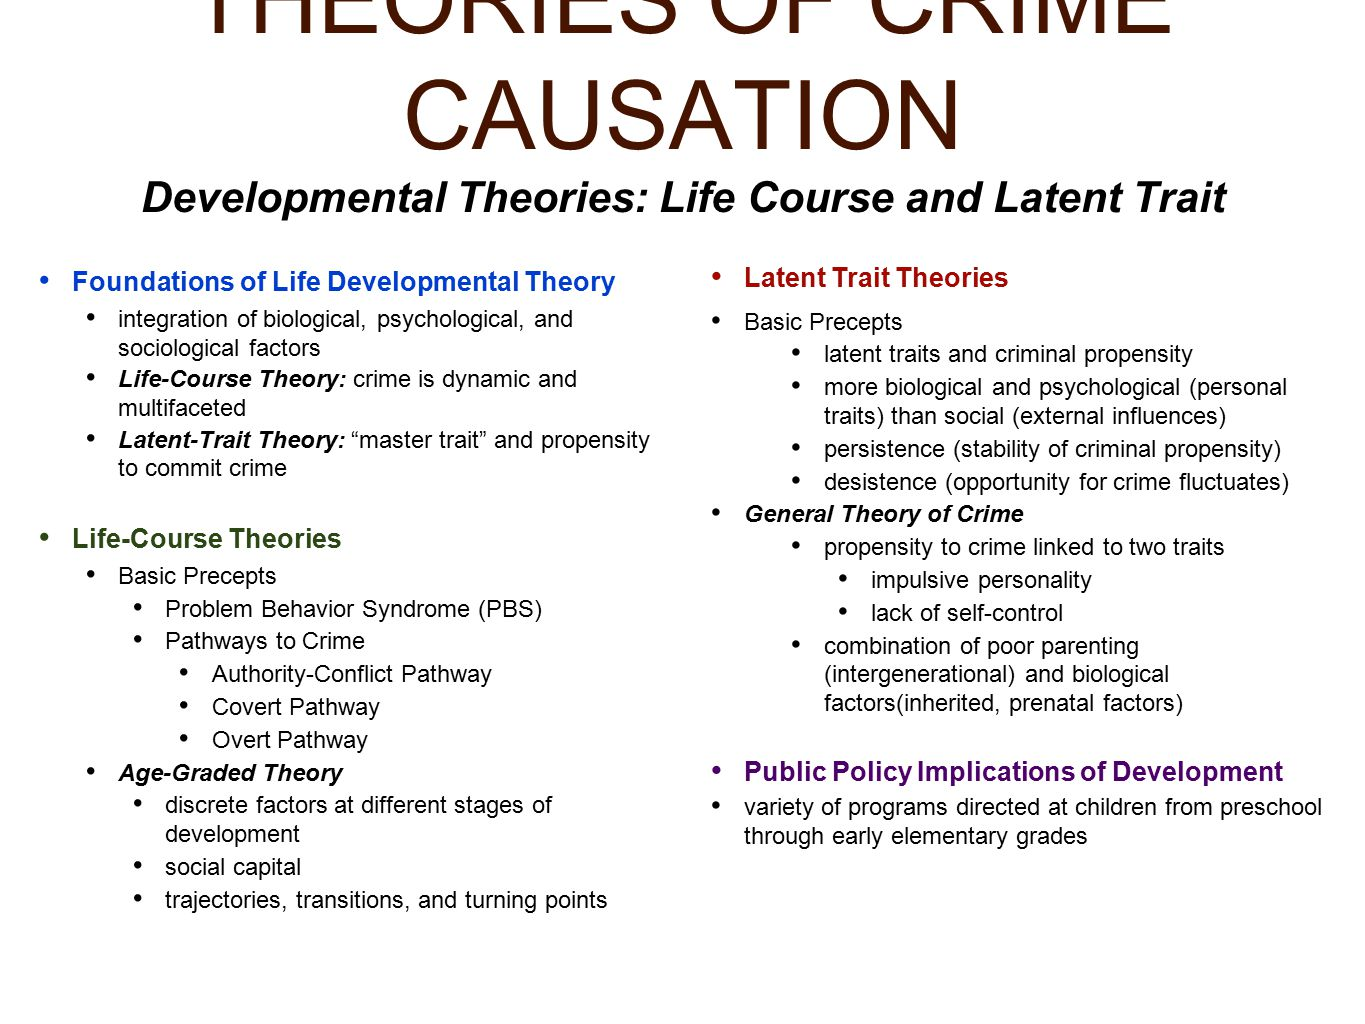 list and describe 3 emergent perspectives on crime causation An introduction to crime and crime causation - crc press book drawn from different and distinct backgrounds, the authors each have unique perspectives on crime, making for a particularly well-rounded text that explores crime from several angles.